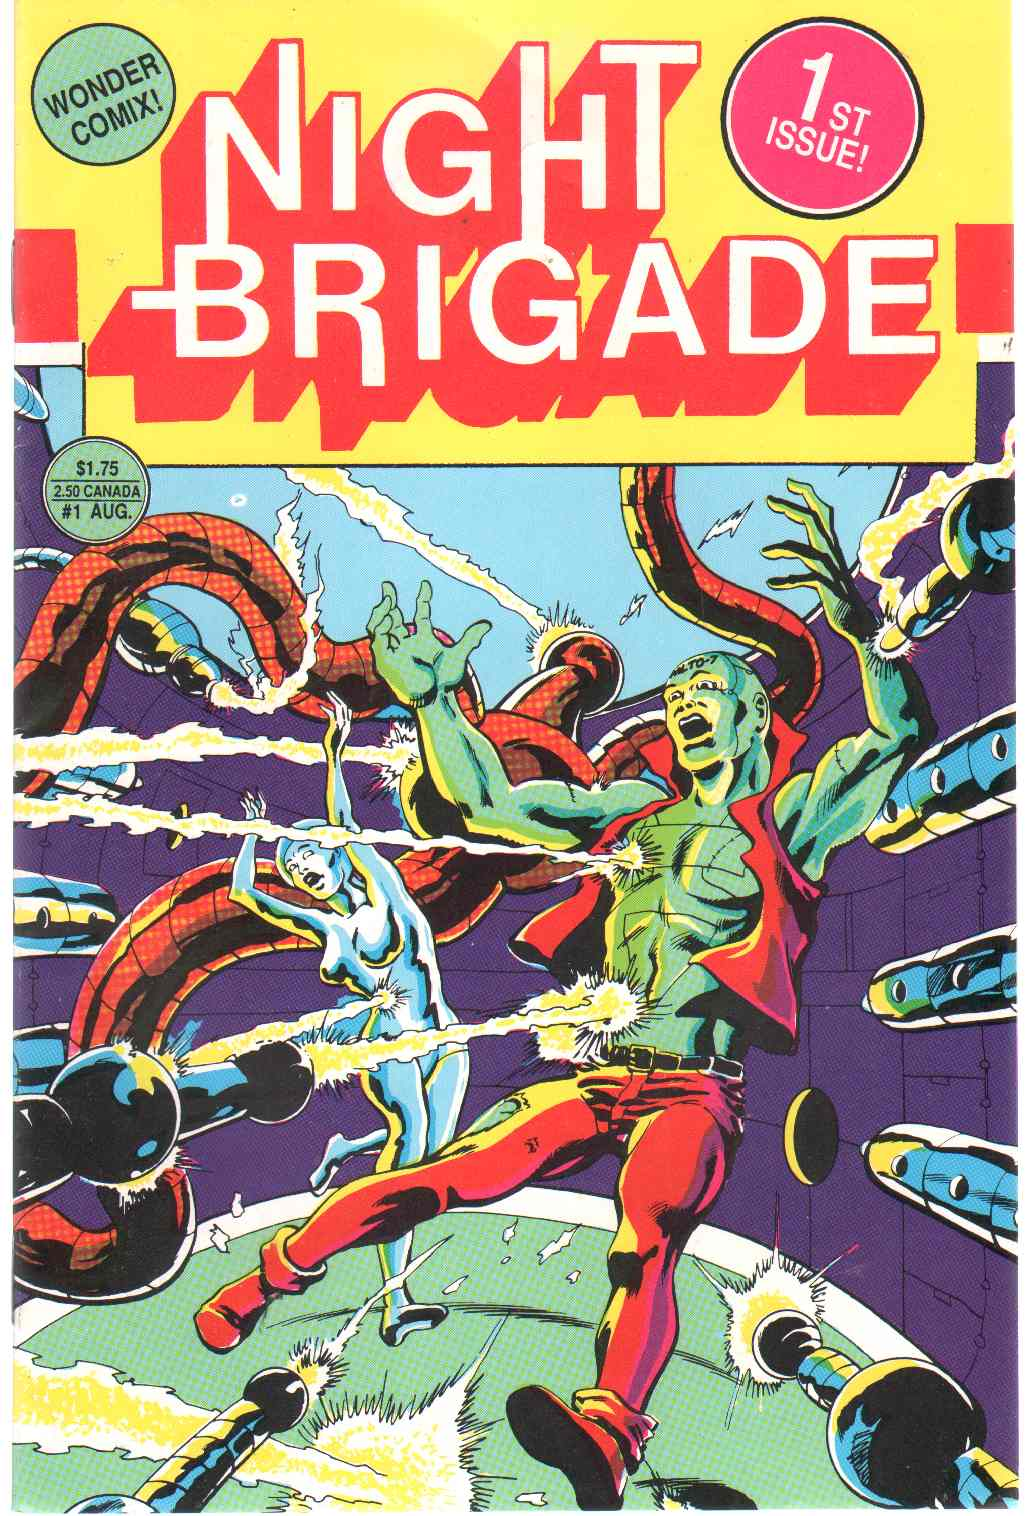 Image for NIGHT BRIGADE Volume 1, Number 1. August 1987